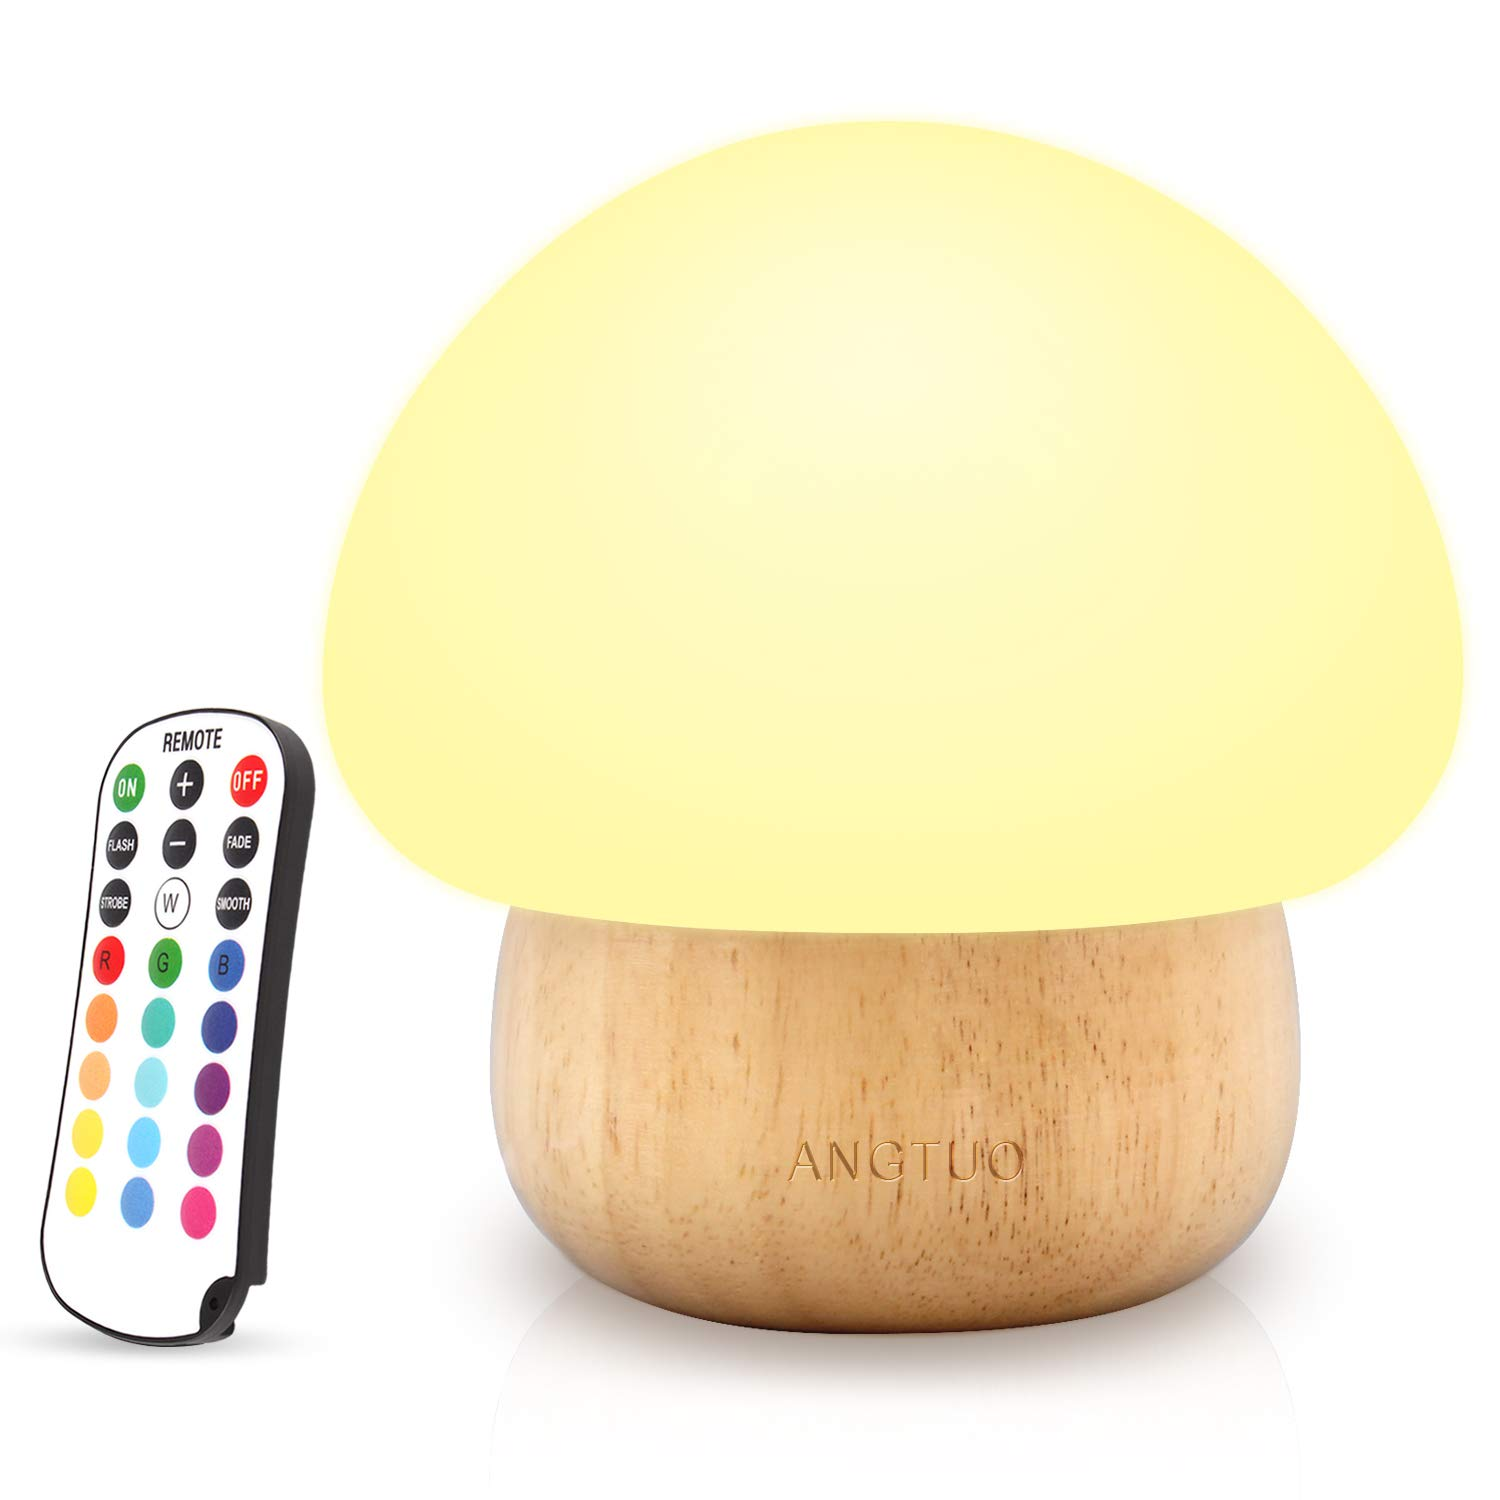 ANGTUO Kids Soft Silicone Mushroom Night Light Bightness Adjustment and Color Change by Remote, Ideal Night Lamp Gift for Boys Girls Kids Toddlers Baby,US Plug